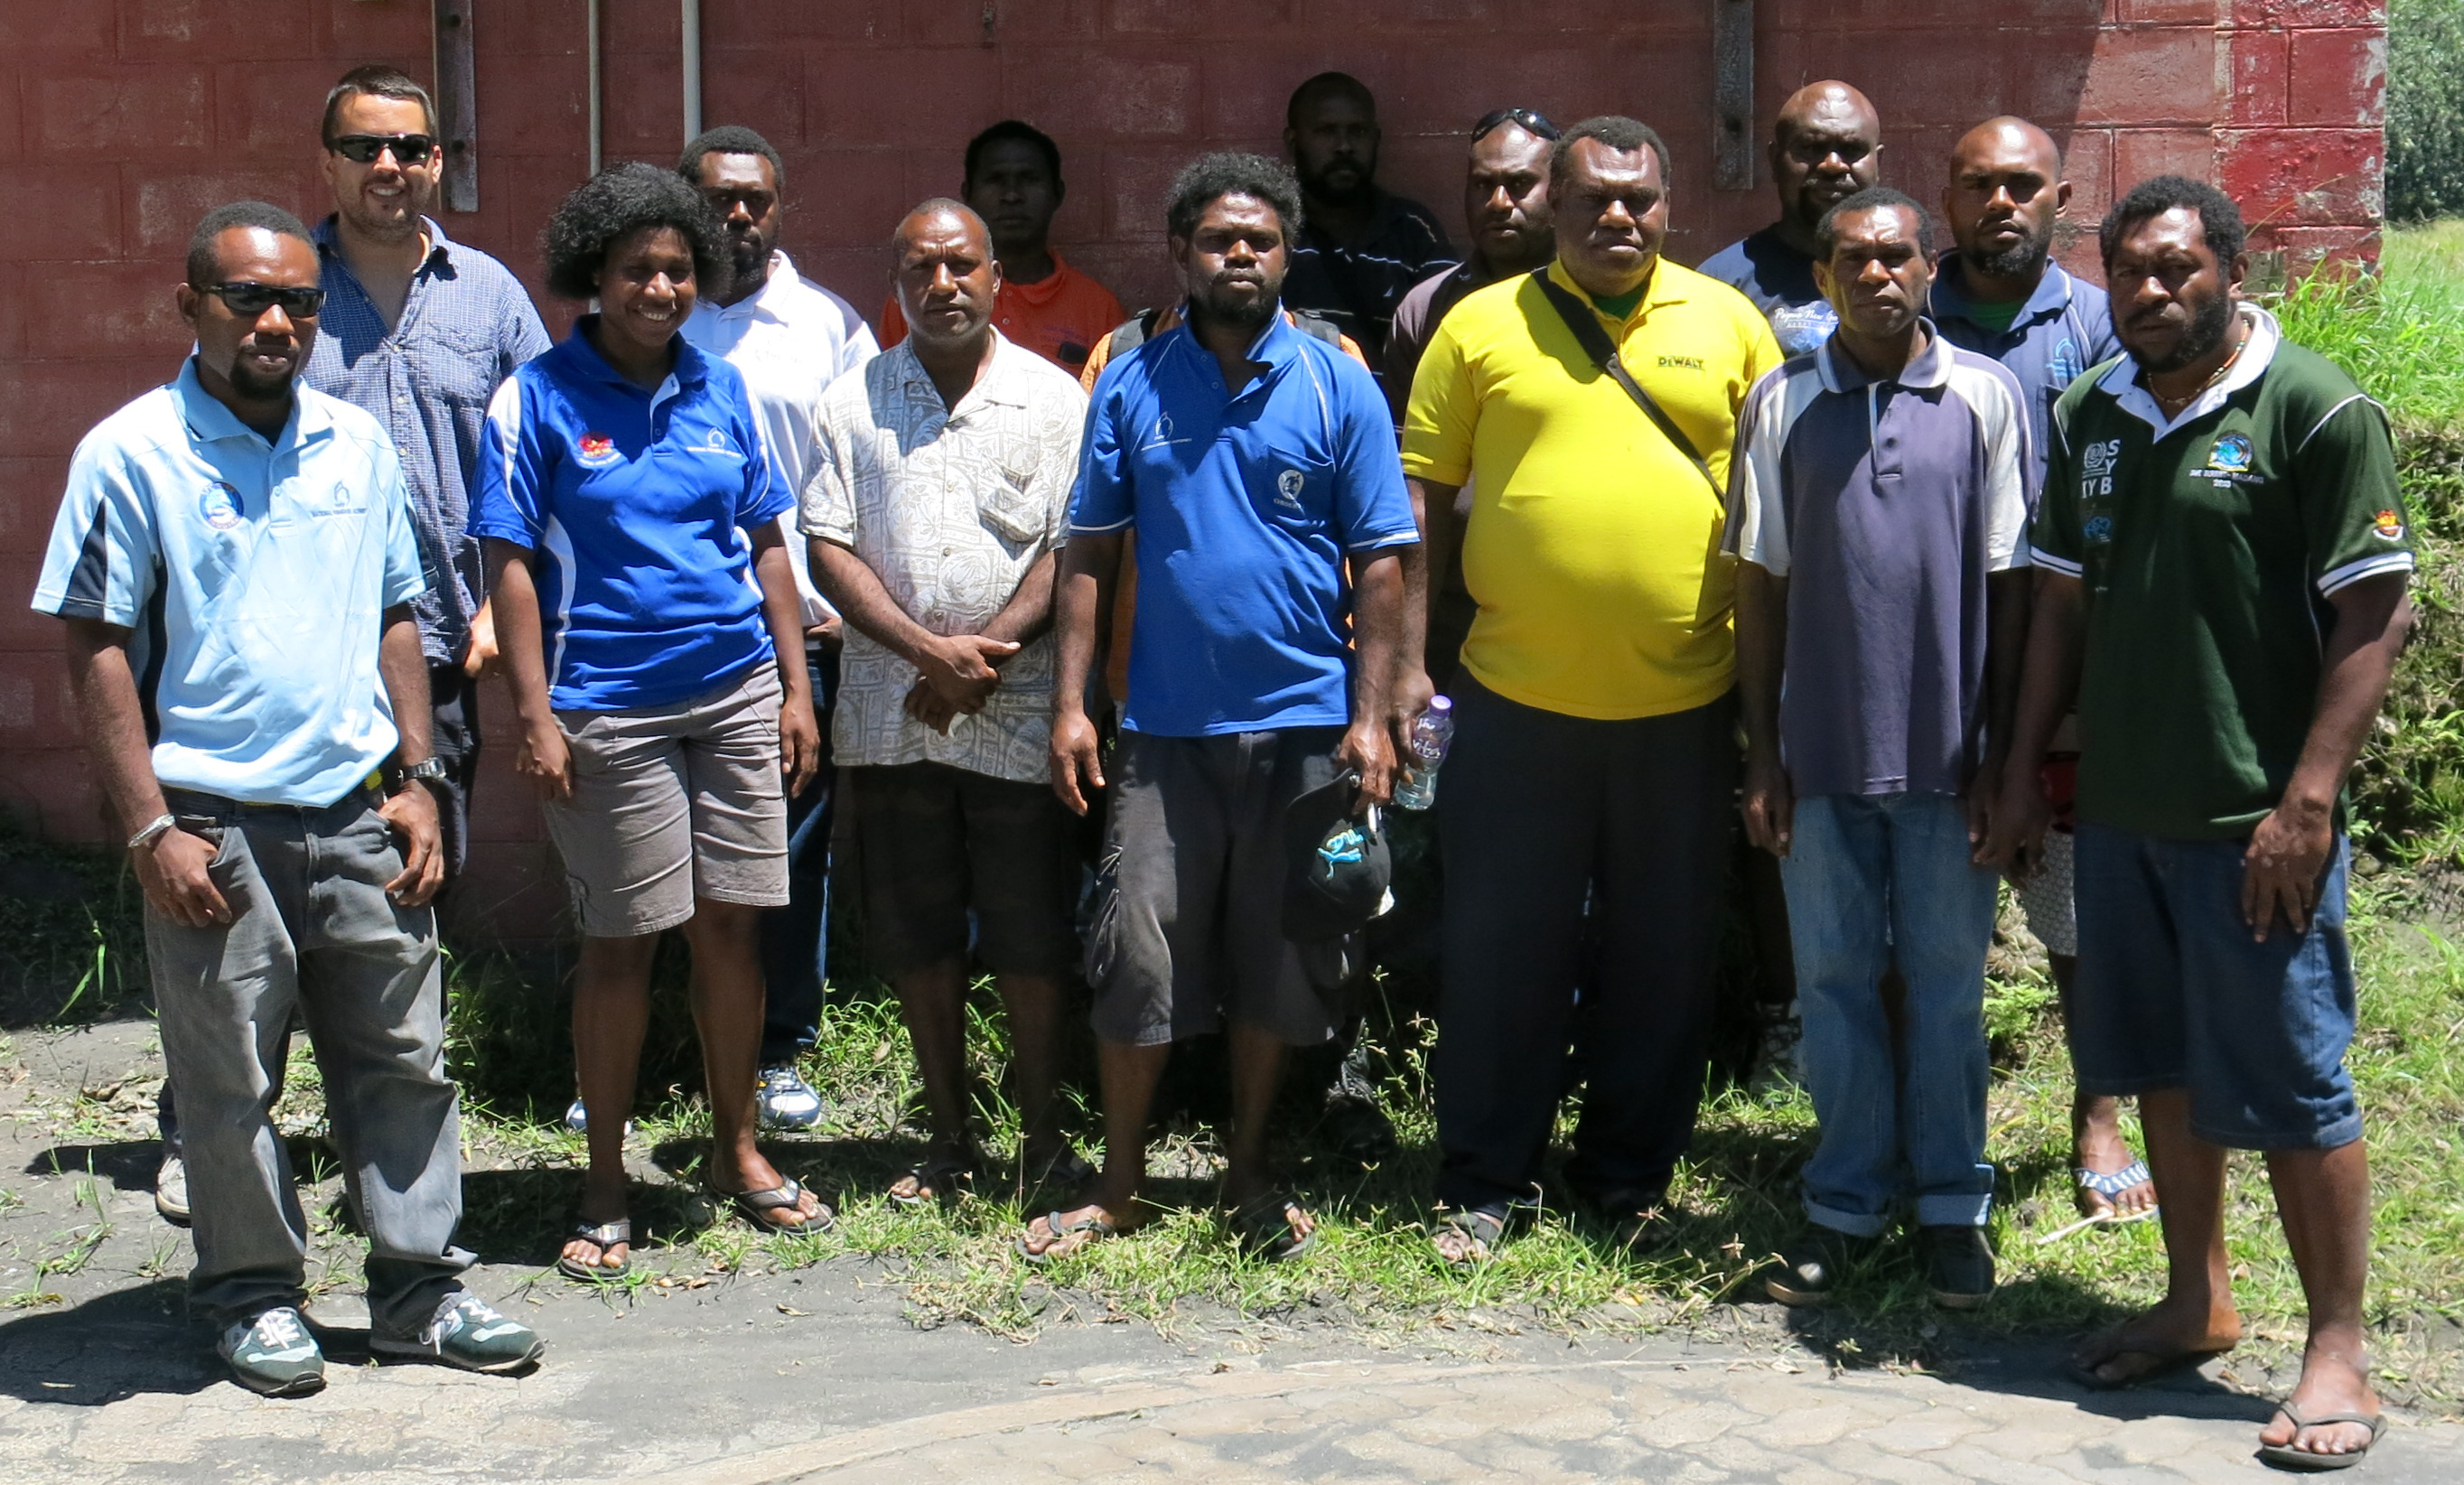 A group photo of local PNG people